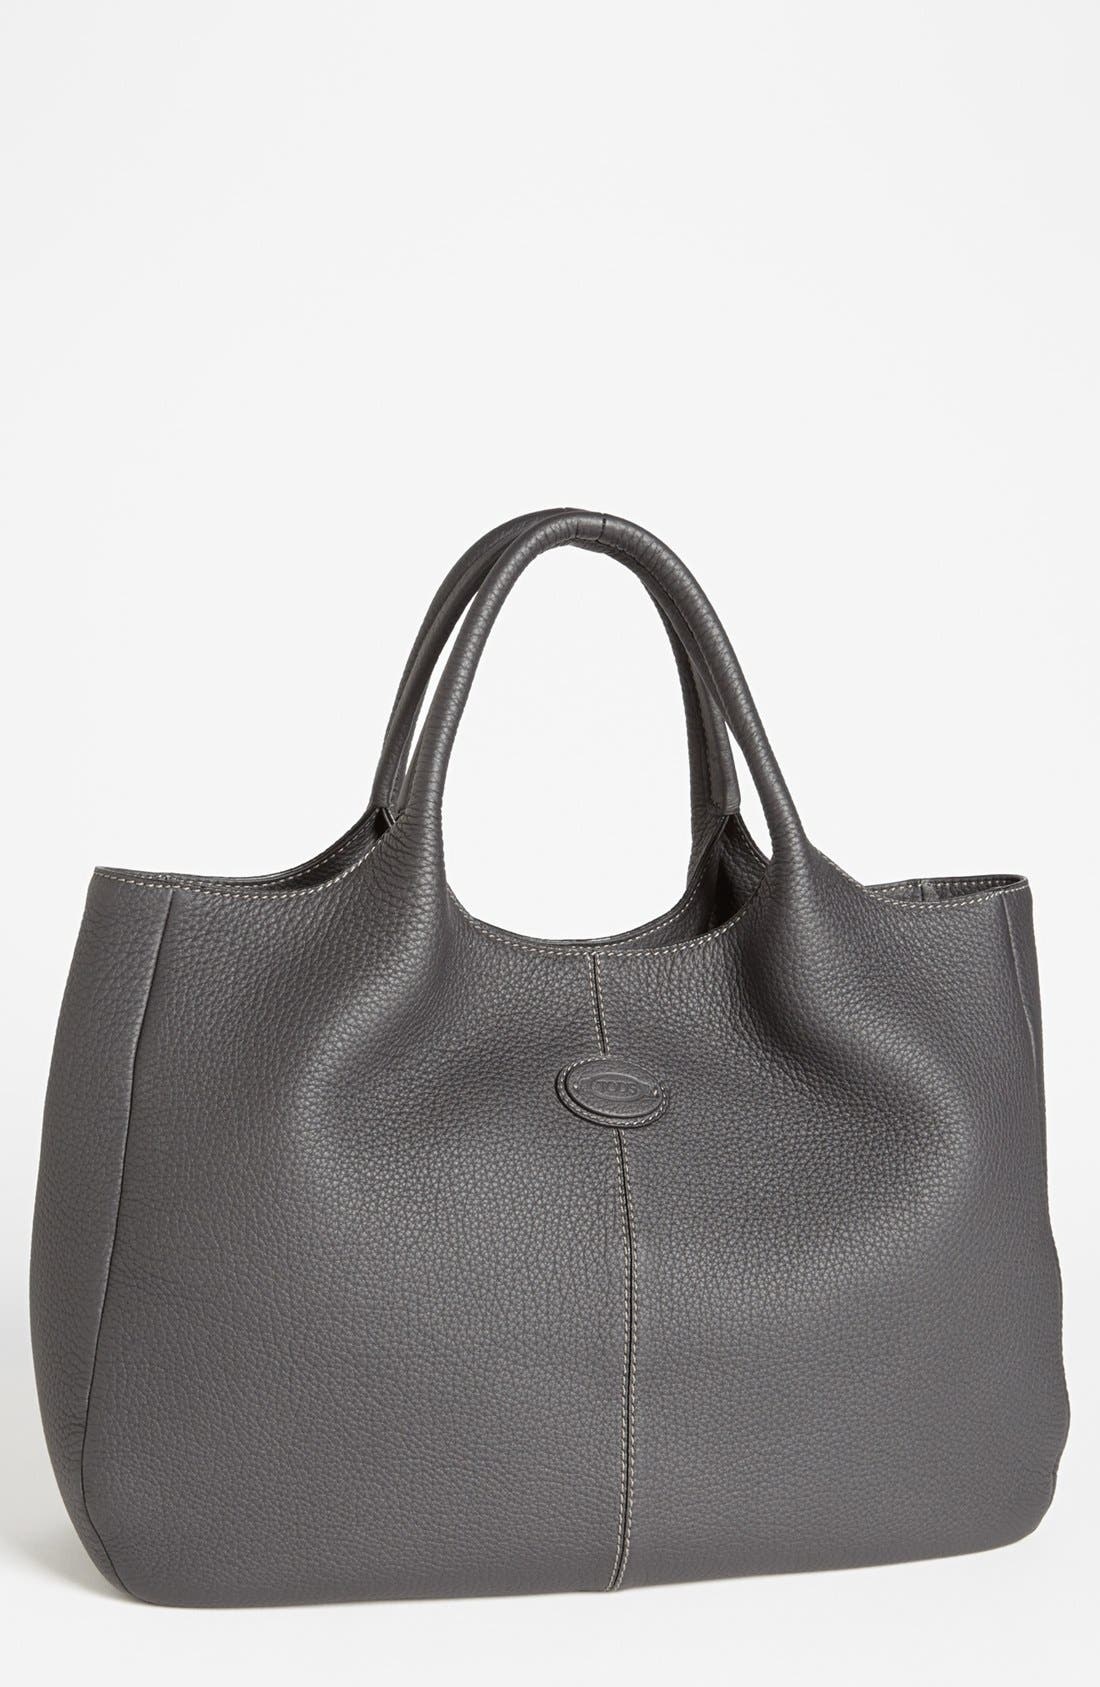 Main Image - Tod's 'ALH - Shopping Media' Tote